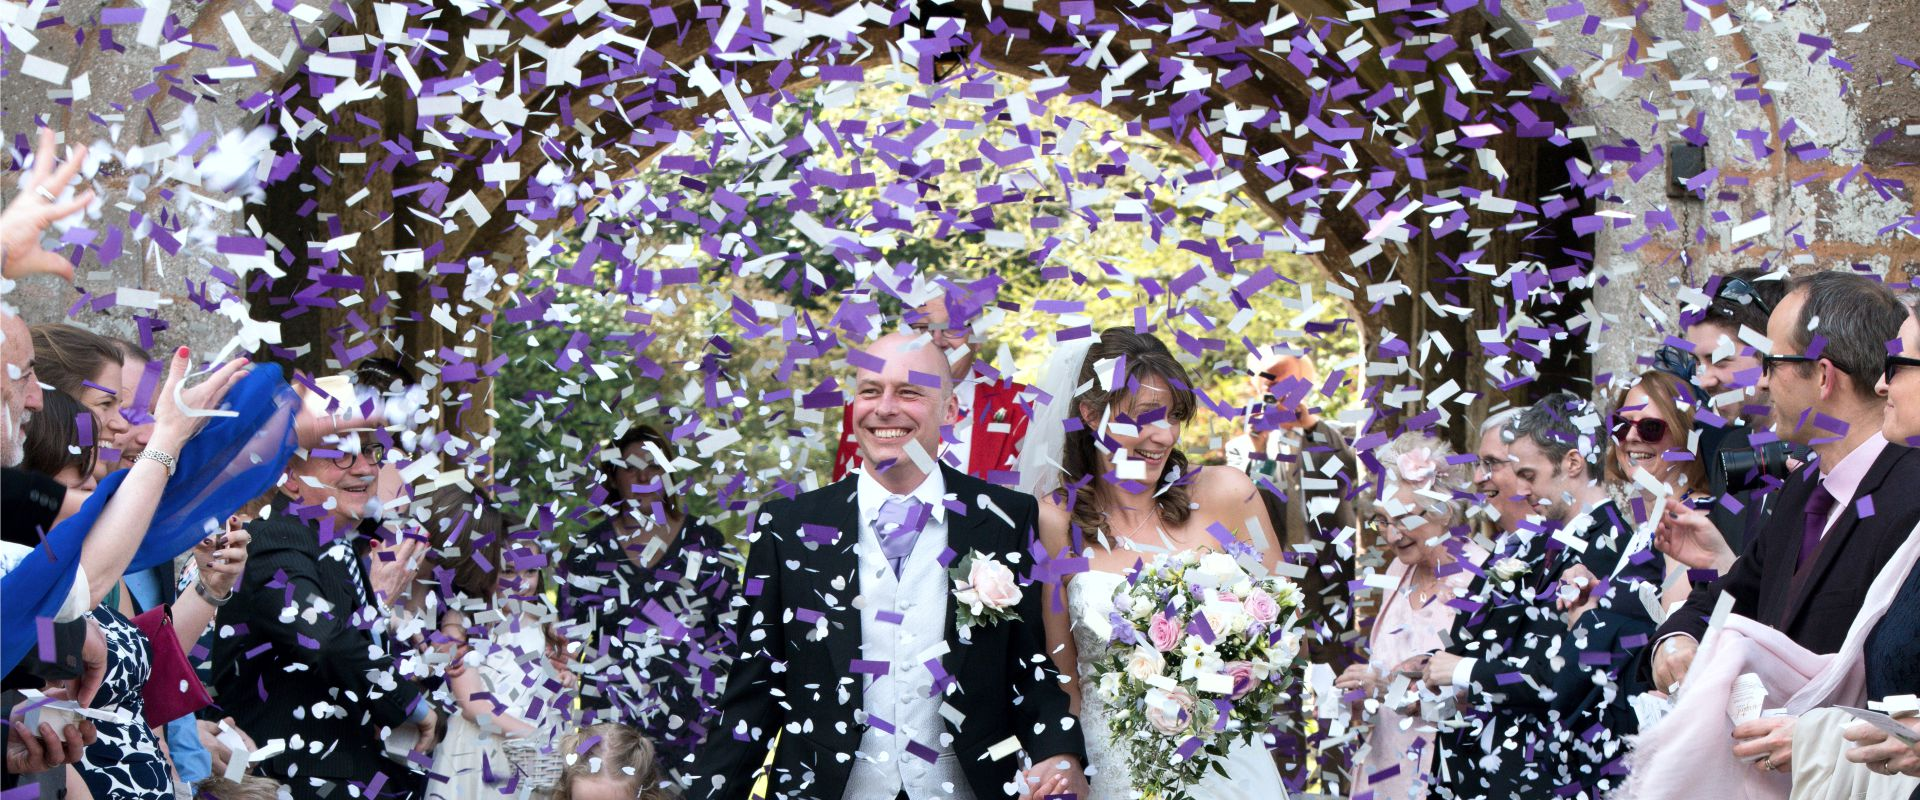 There are numerous opportunities during the big day for our wedding confetti cannons to add a touch of magic - and most importantly, we will custom load them for you with your own personal mix of colours to match your colour scheme perfectly